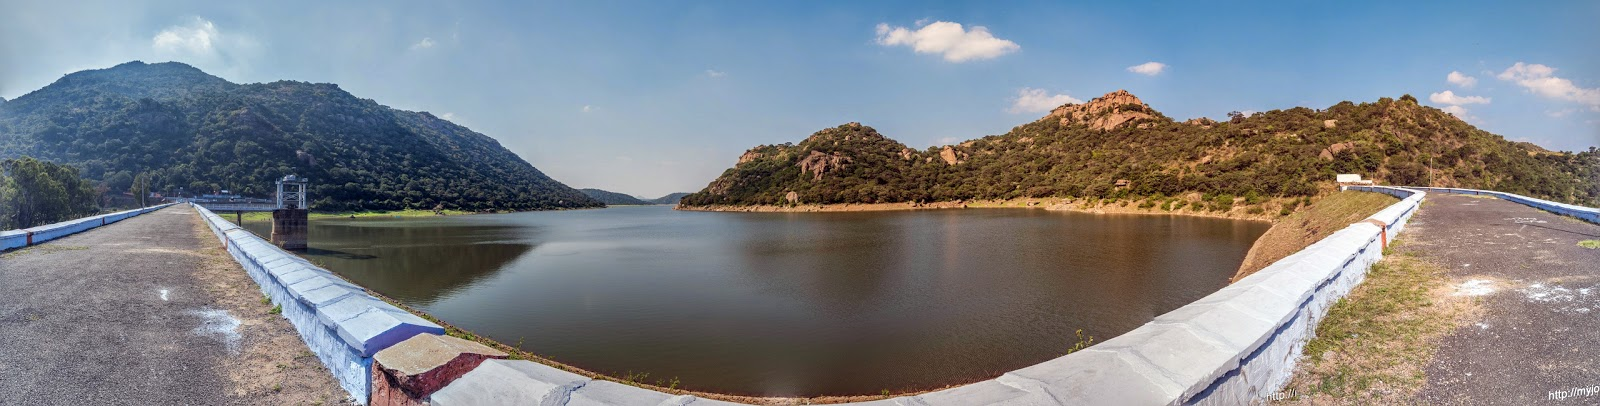 Panoramic View of Panchapalli Dam